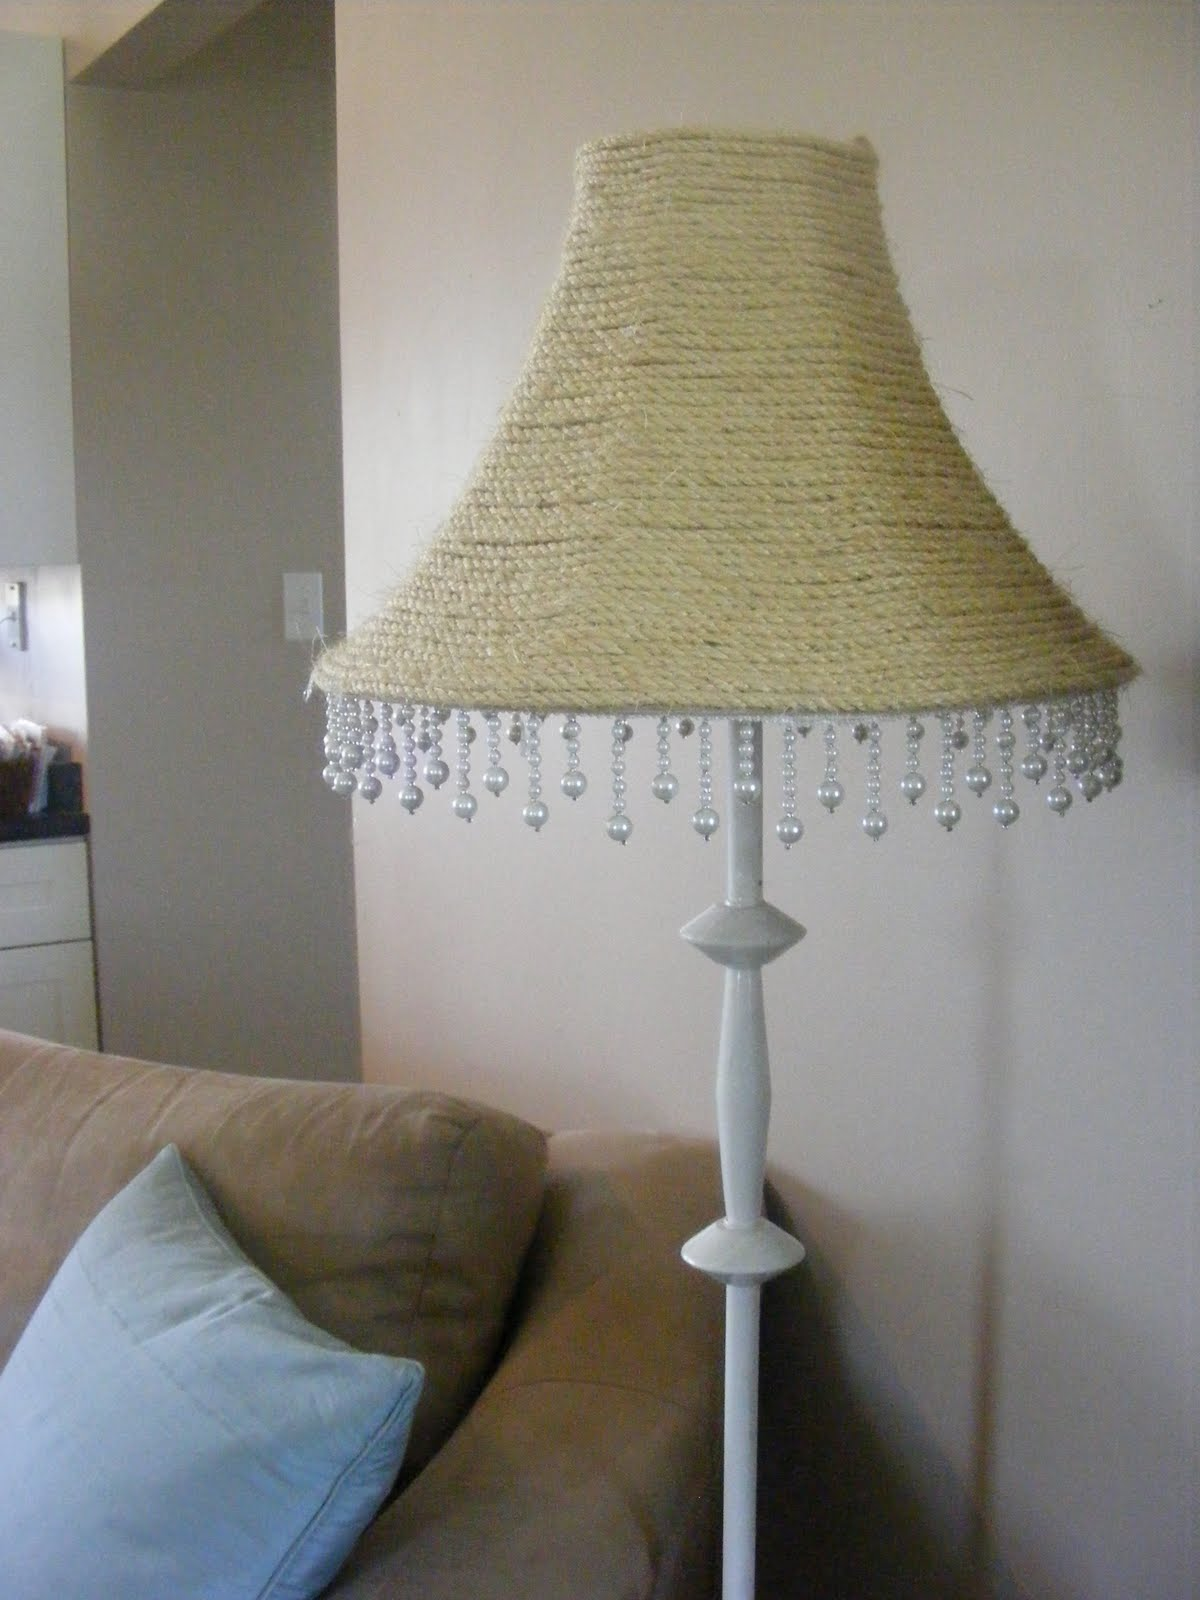 a nautitical inspired lampshade ropelampshadejpg a nautitical inspired lampshade: lighting living room complete guide